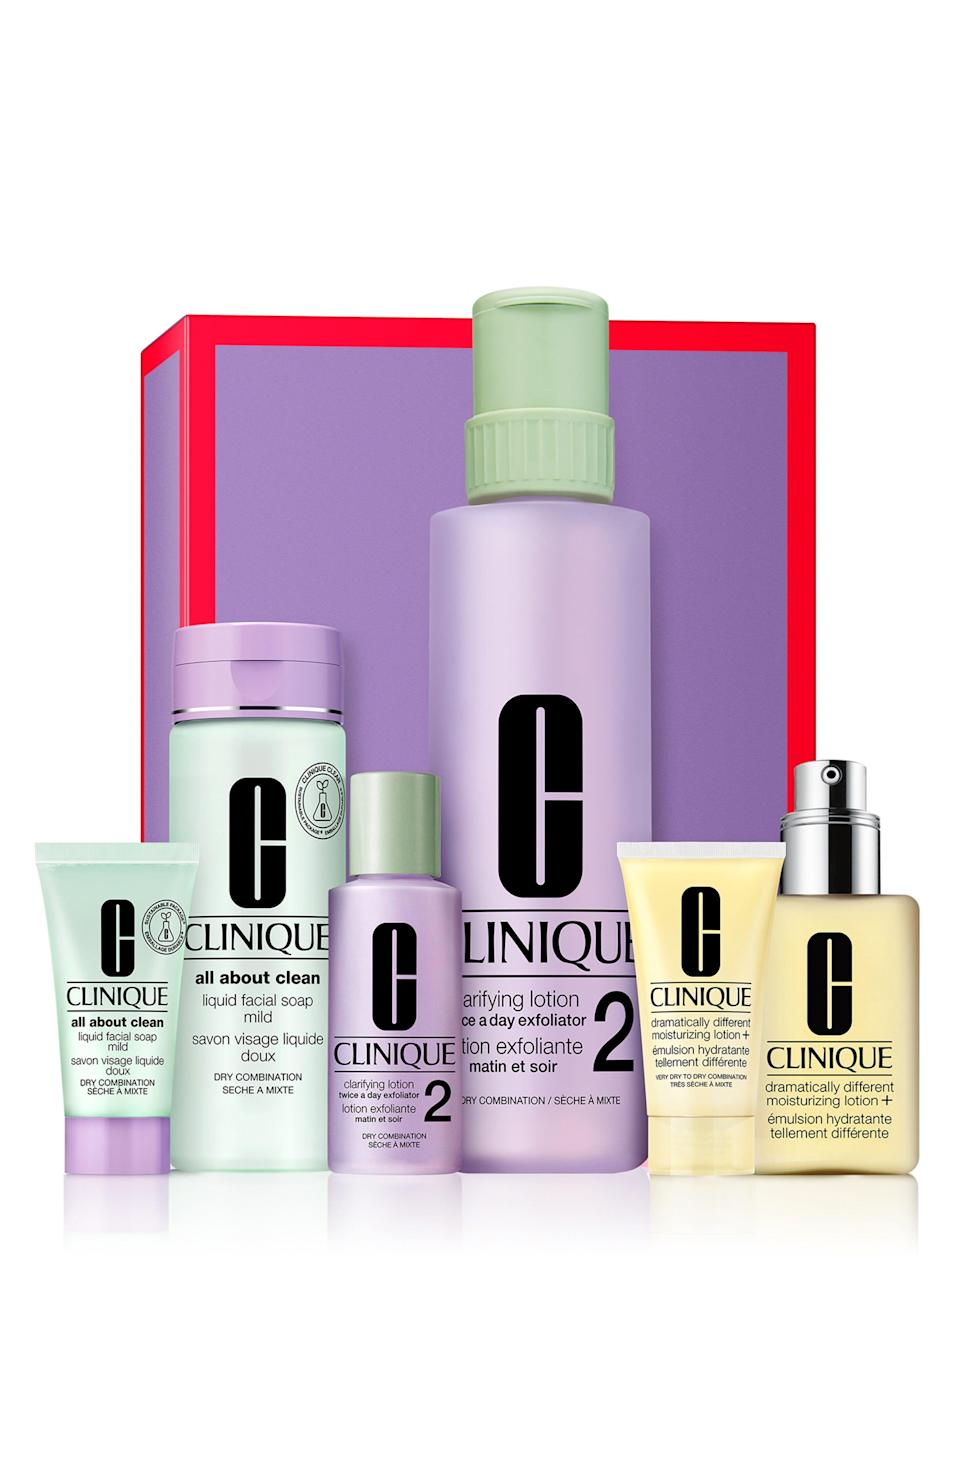 """<p><strong>CLINIQUE</strong></p><p>nordstrom.com</p><p><strong>$40.80</strong></p><p><a href=""""https://go.redirectingat.com?id=74968X1596630&url=https%3A%2F%2Fwww.nordstrom.com%2Fs%2Fclinique-great-skin-everywhere-home-away-set-for-very-dry-to-dry-combination-skin-types-usd-96-50-value%2F5728359&sref=https%3A%2F%2Fwww.marieclaire.com%2Ffashion%2Fg35090742%2Fnordstrom-half-yearly-sale-2020%2F"""" rel=""""nofollow noopener"""" target=""""_blank"""" data-ylk=""""slk:Shop Now"""" class=""""link rapid-noclick-resp"""">Shop Now</a></p>"""